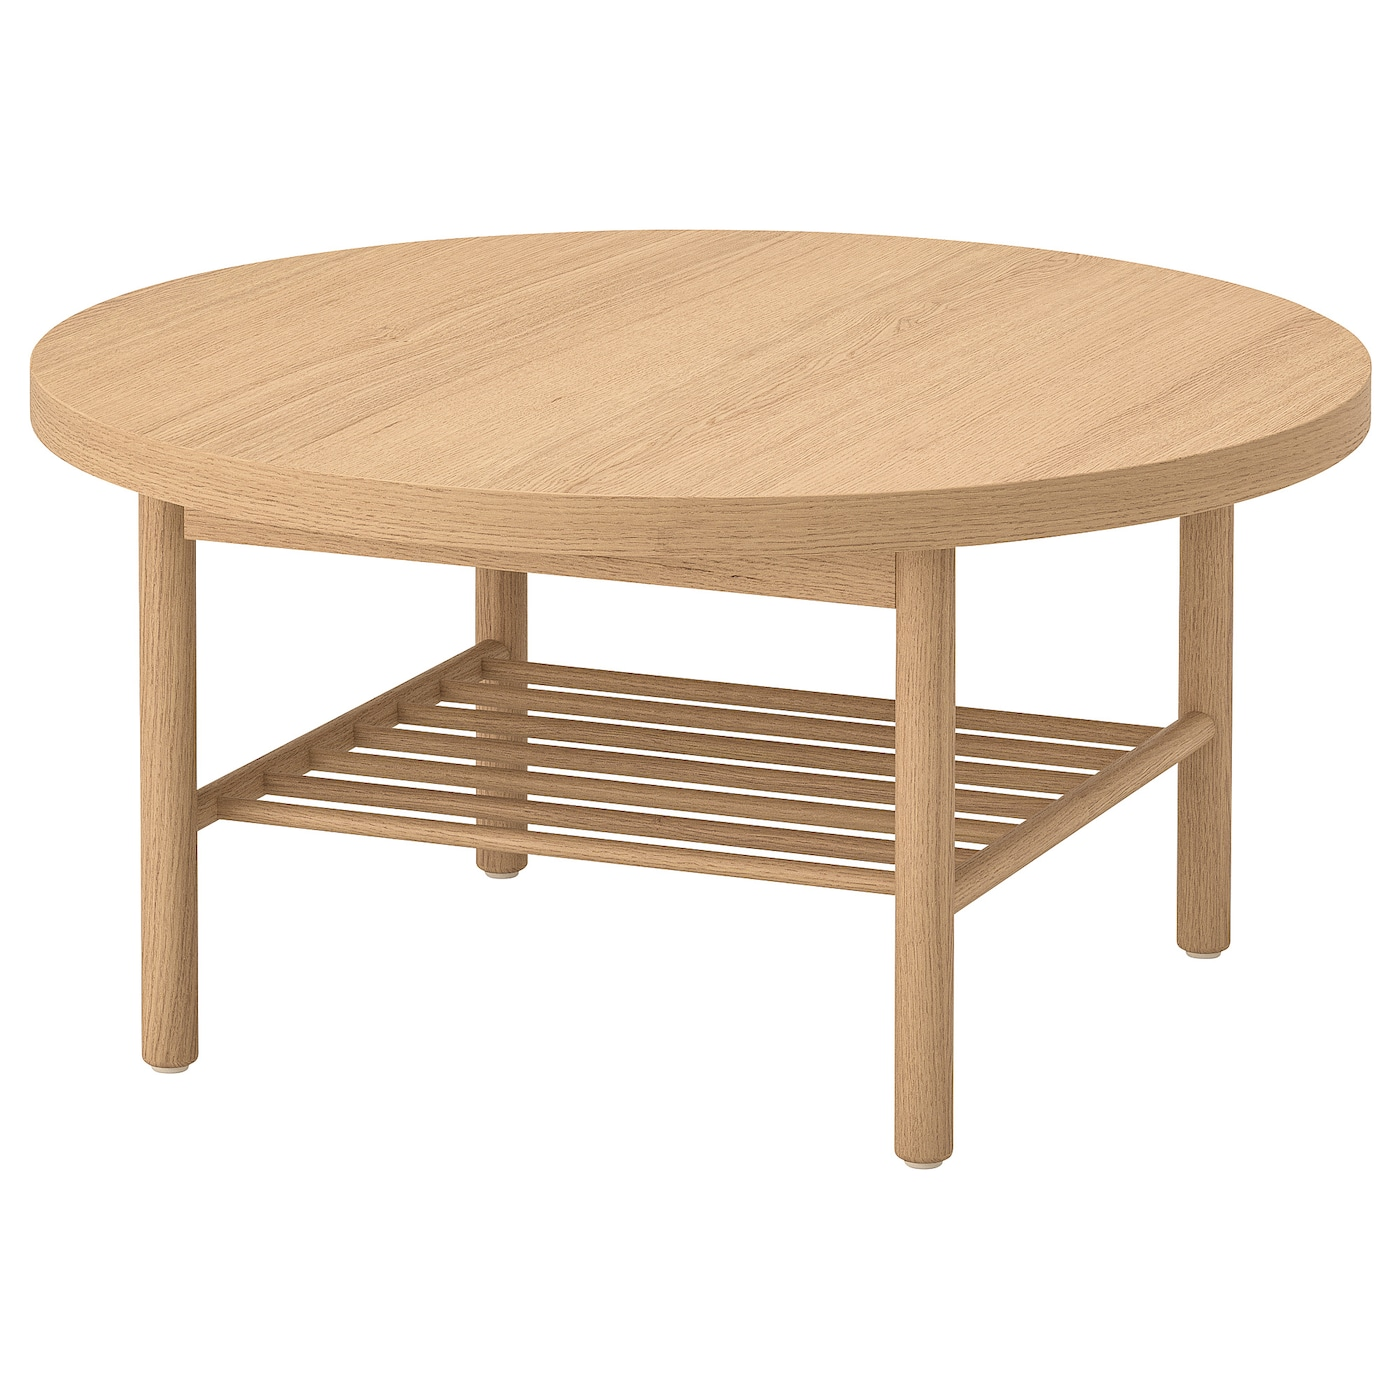 Listerby Coffee Table White Stained Oak 90 Cm [ 1400 x 1400 Pixel ]